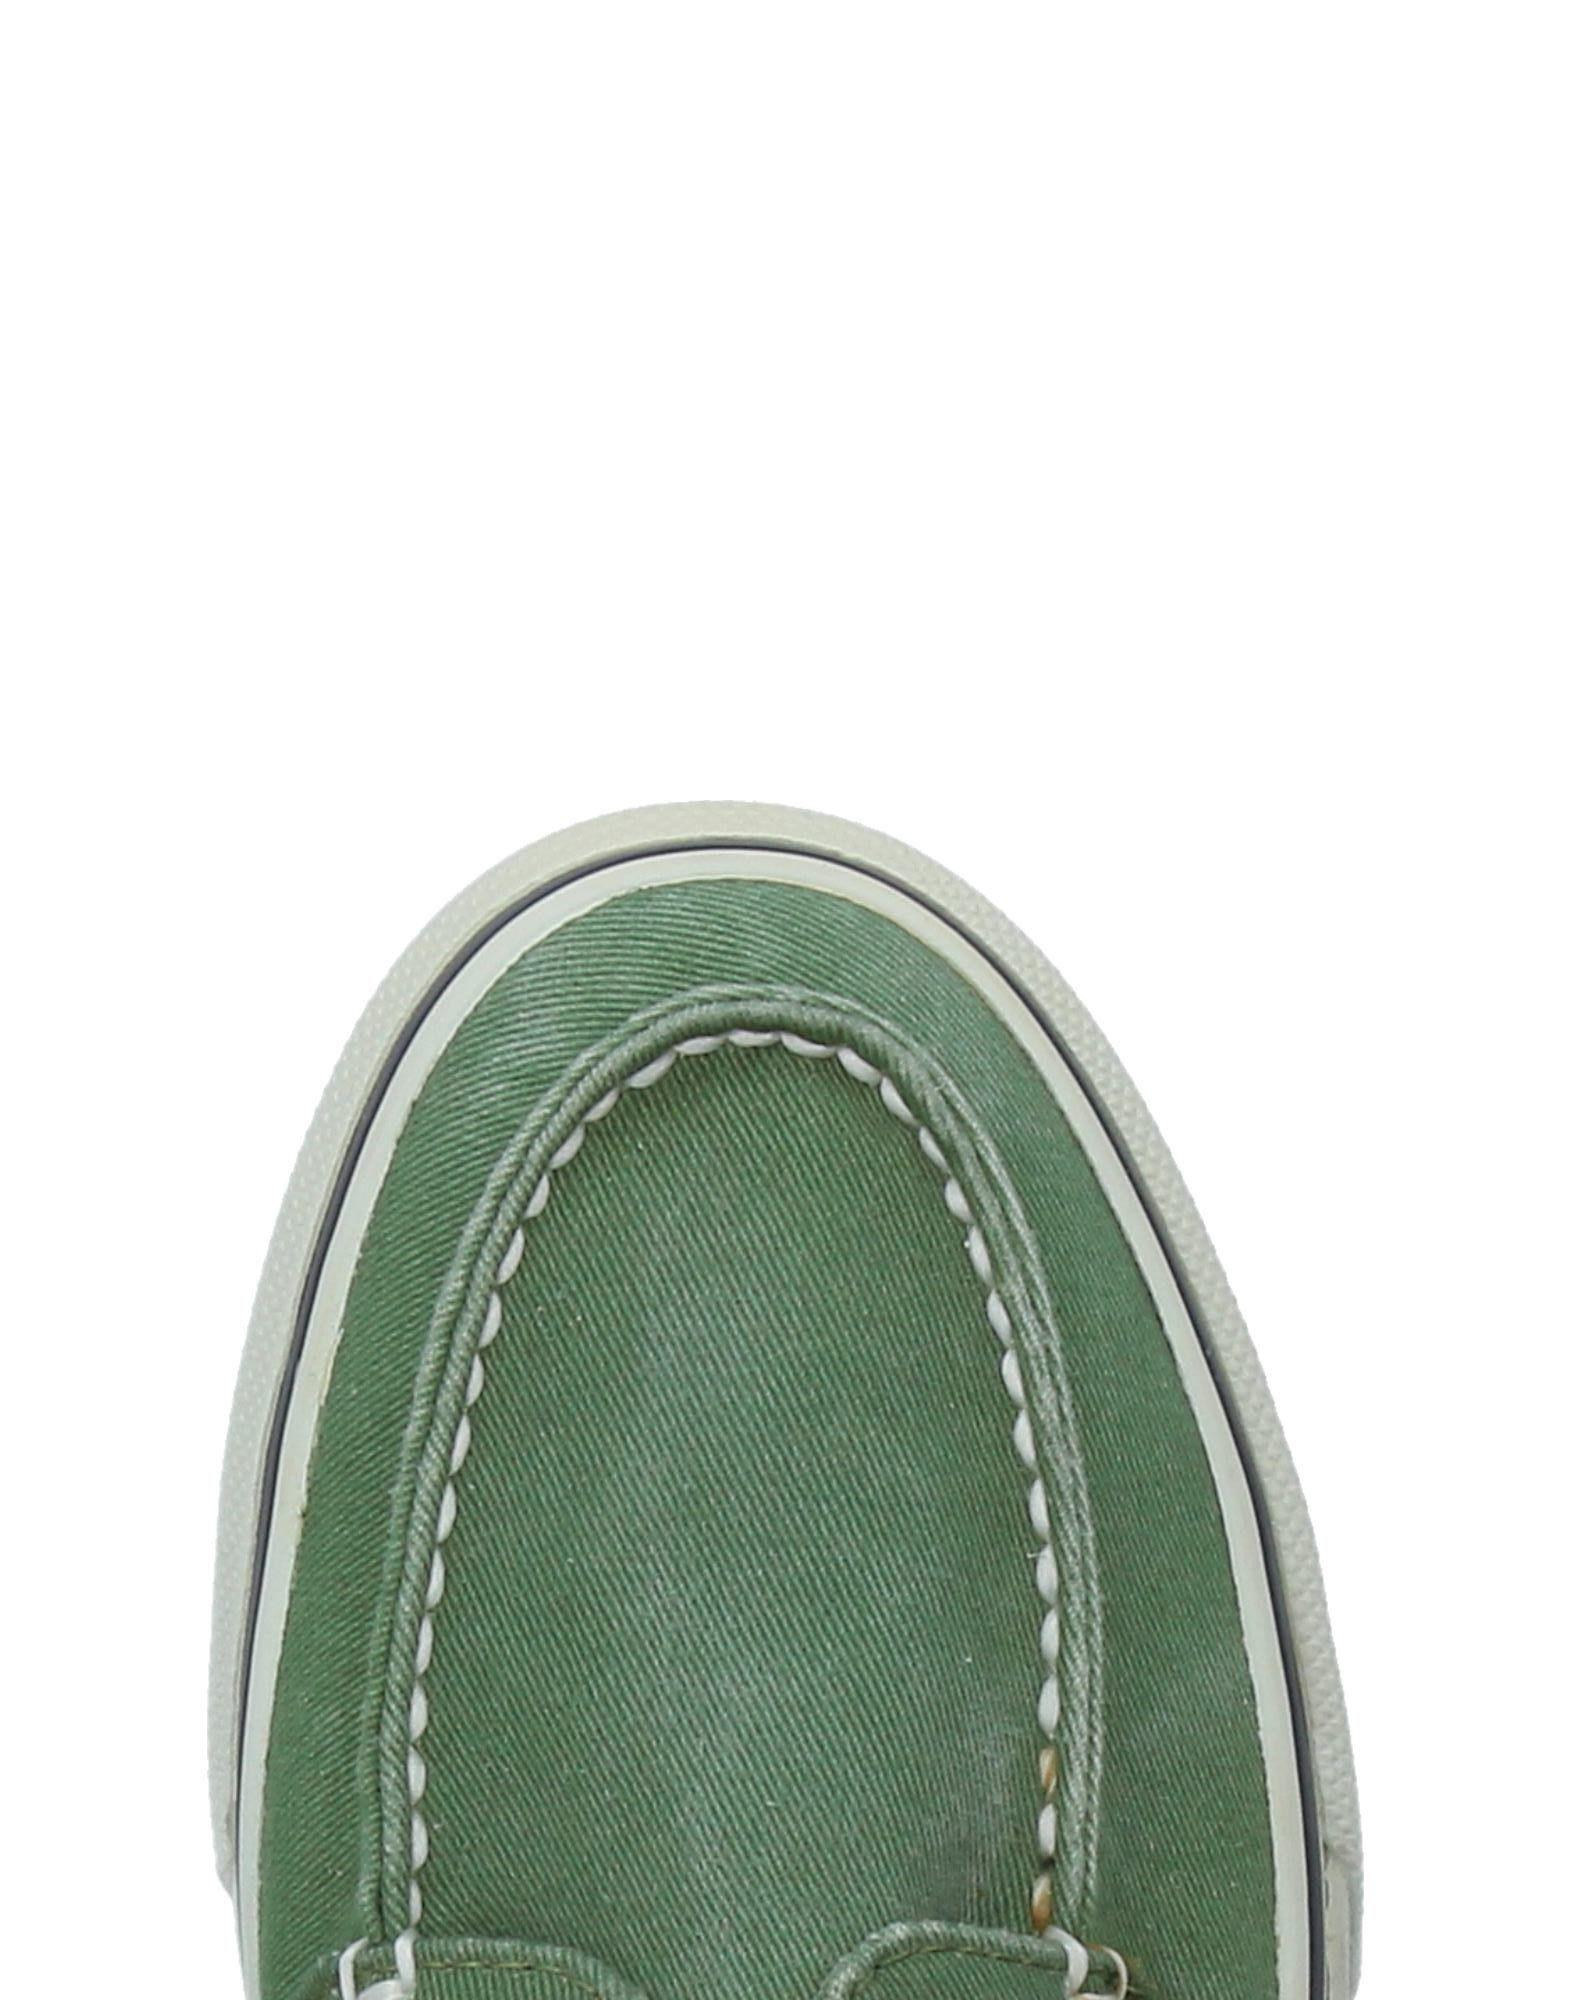 Sperry Top-Sider Loafer in Military Green (Green) for Men